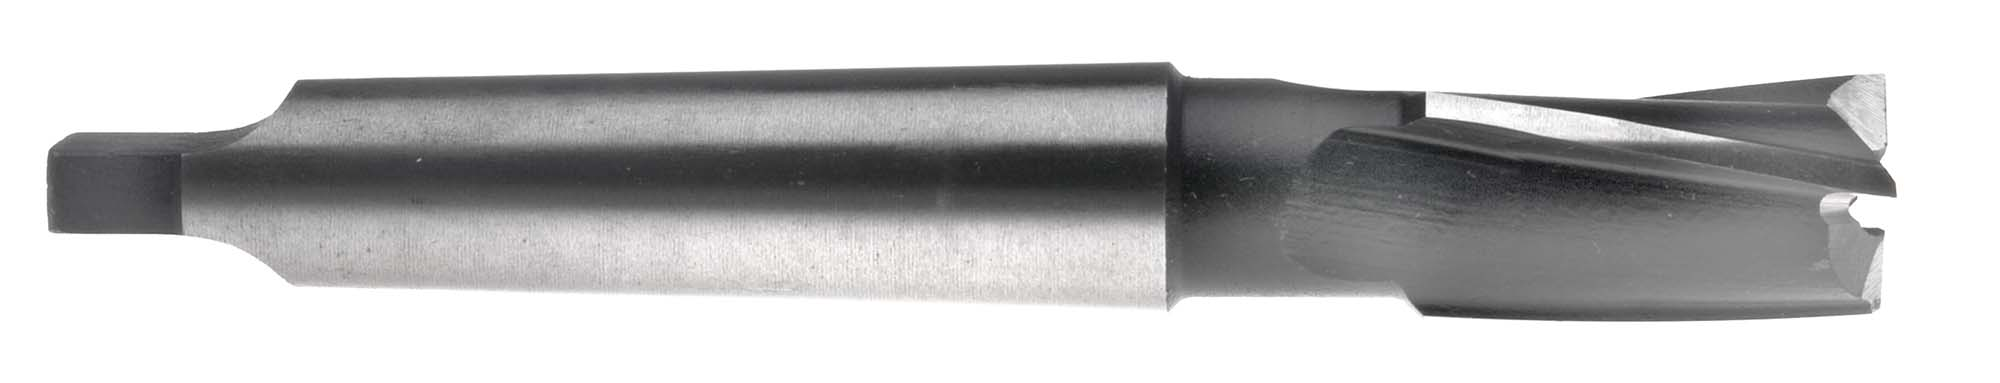 "1"" Taper Shank Counterbore, Interchangeable Pilot Type, High Speed Steel"